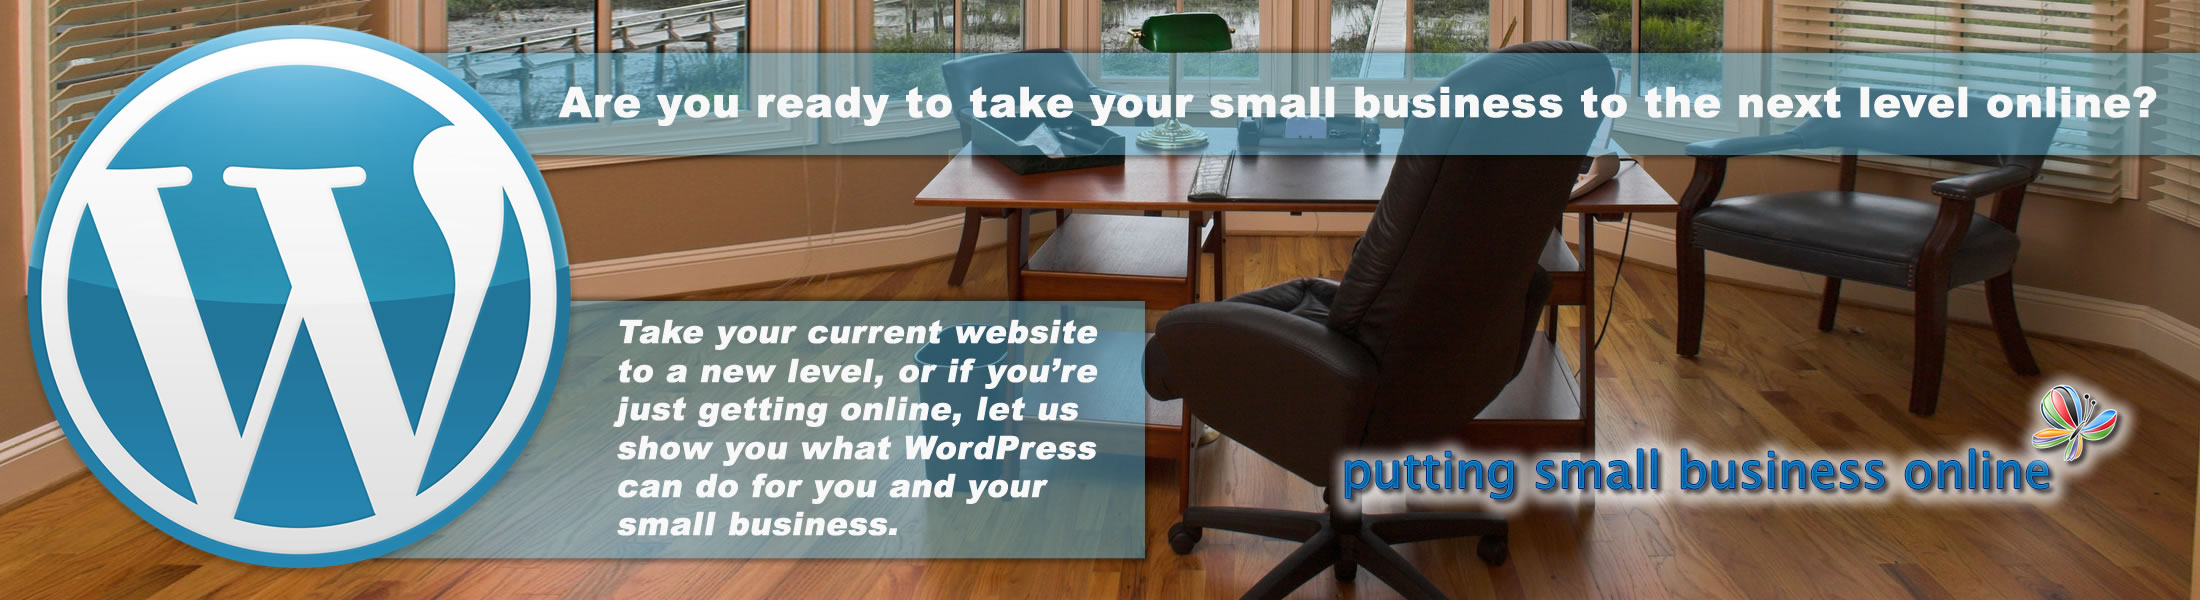 Let us put your small business online.